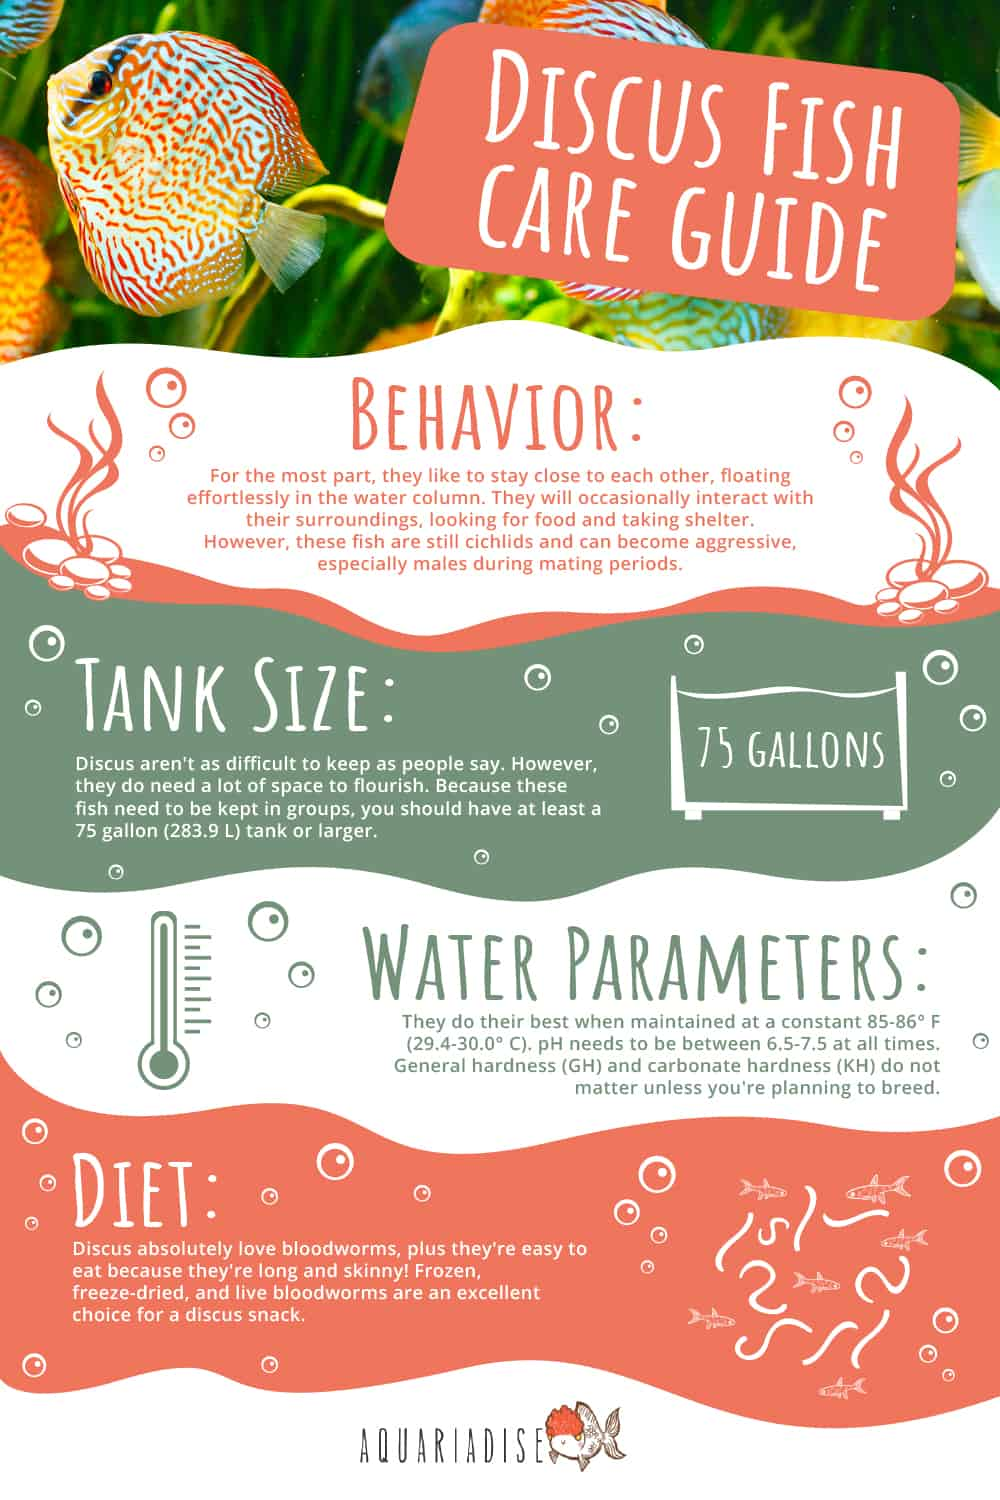 Discus Fish Care Guide Infographic